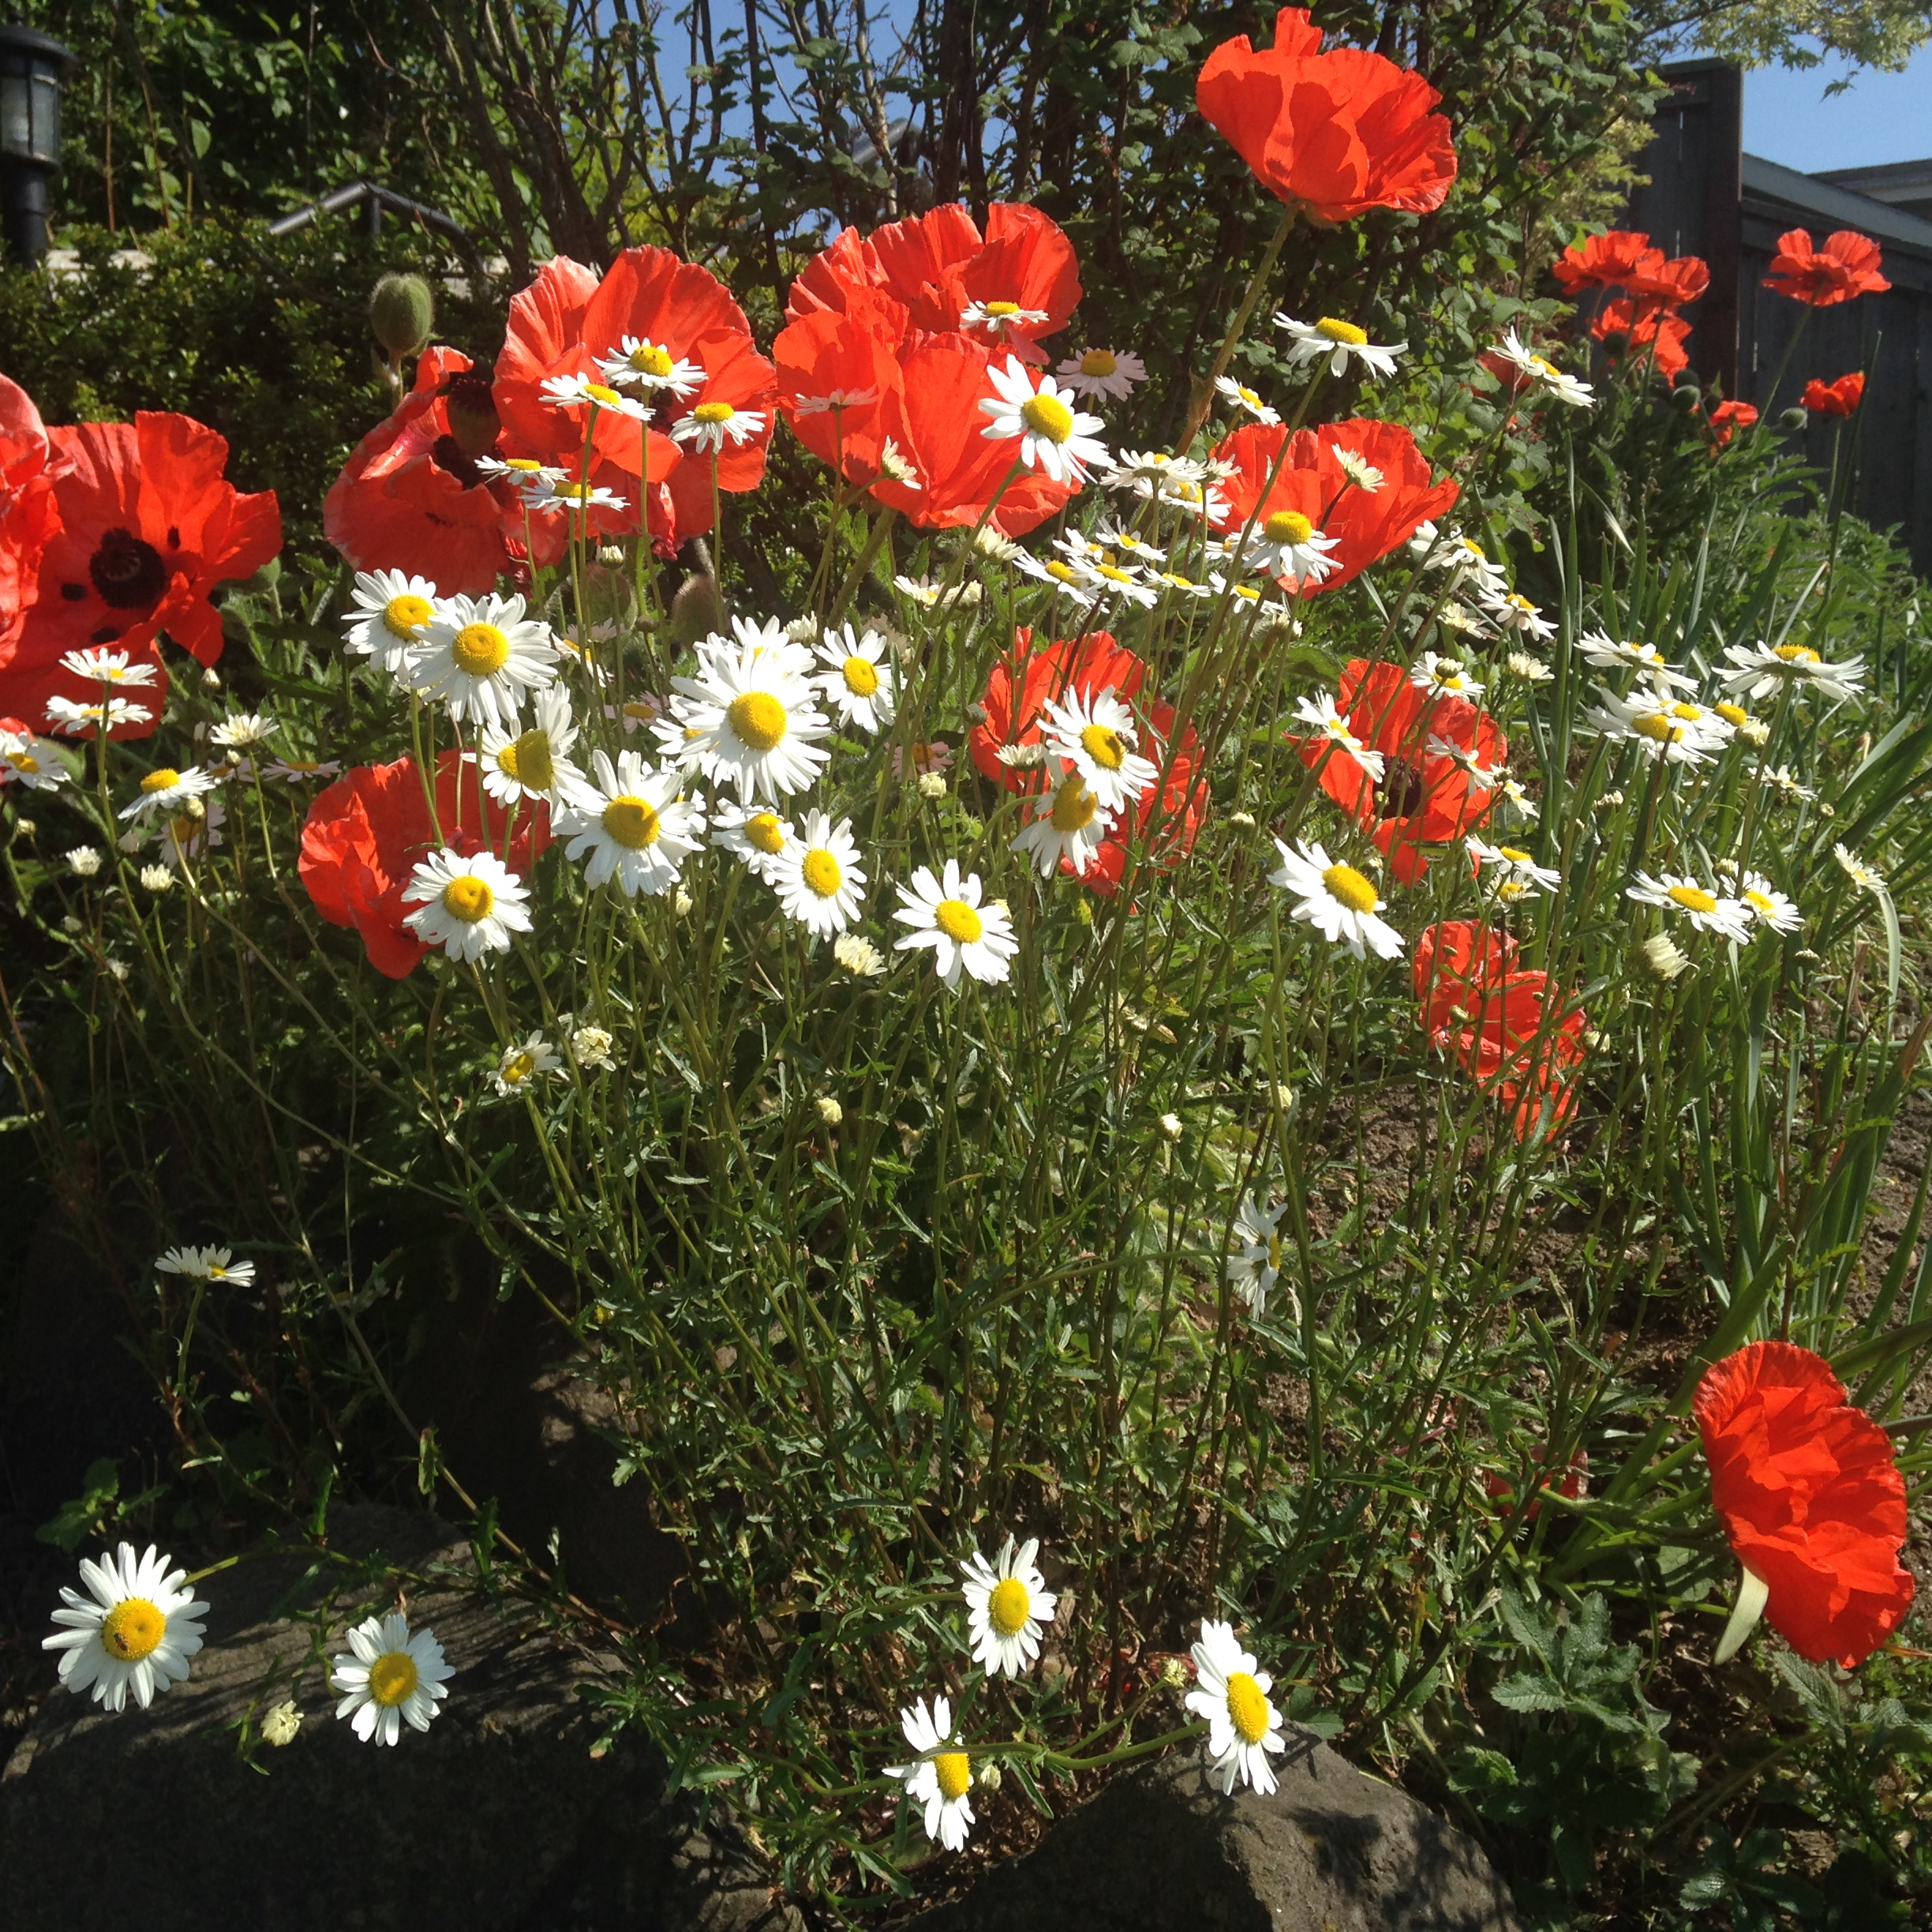 Bright orange poppies on a sunny spring afternoon.